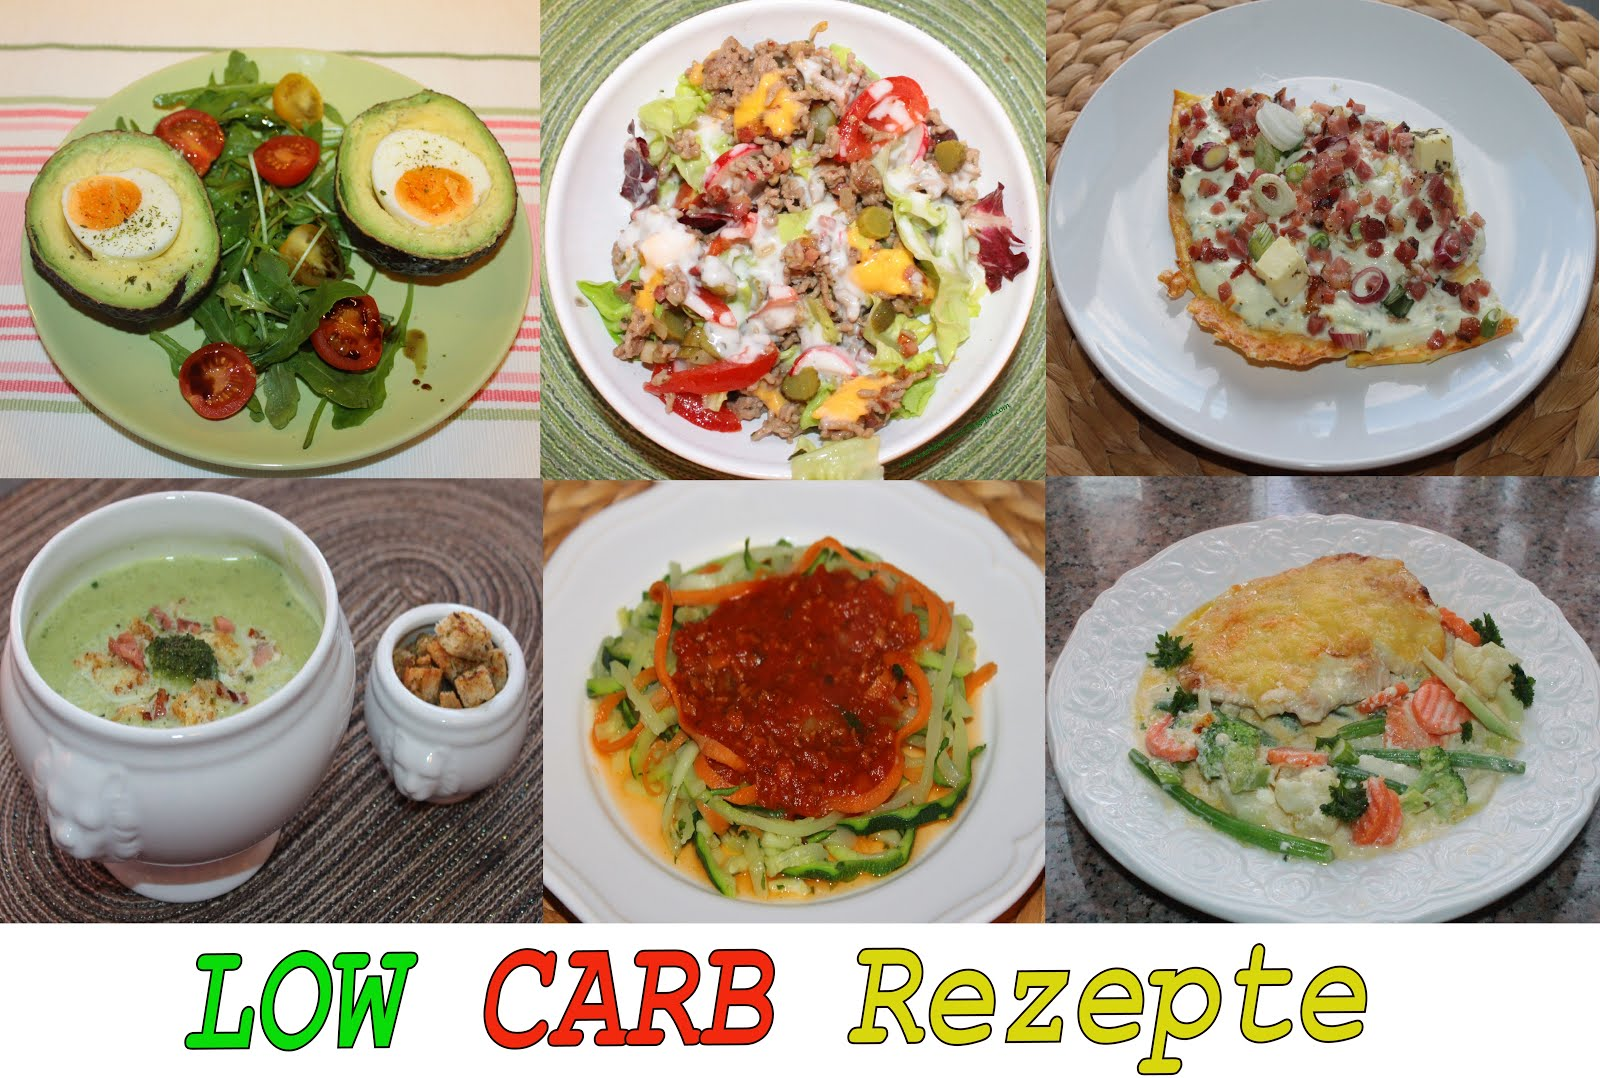 LOW CARB im Februar